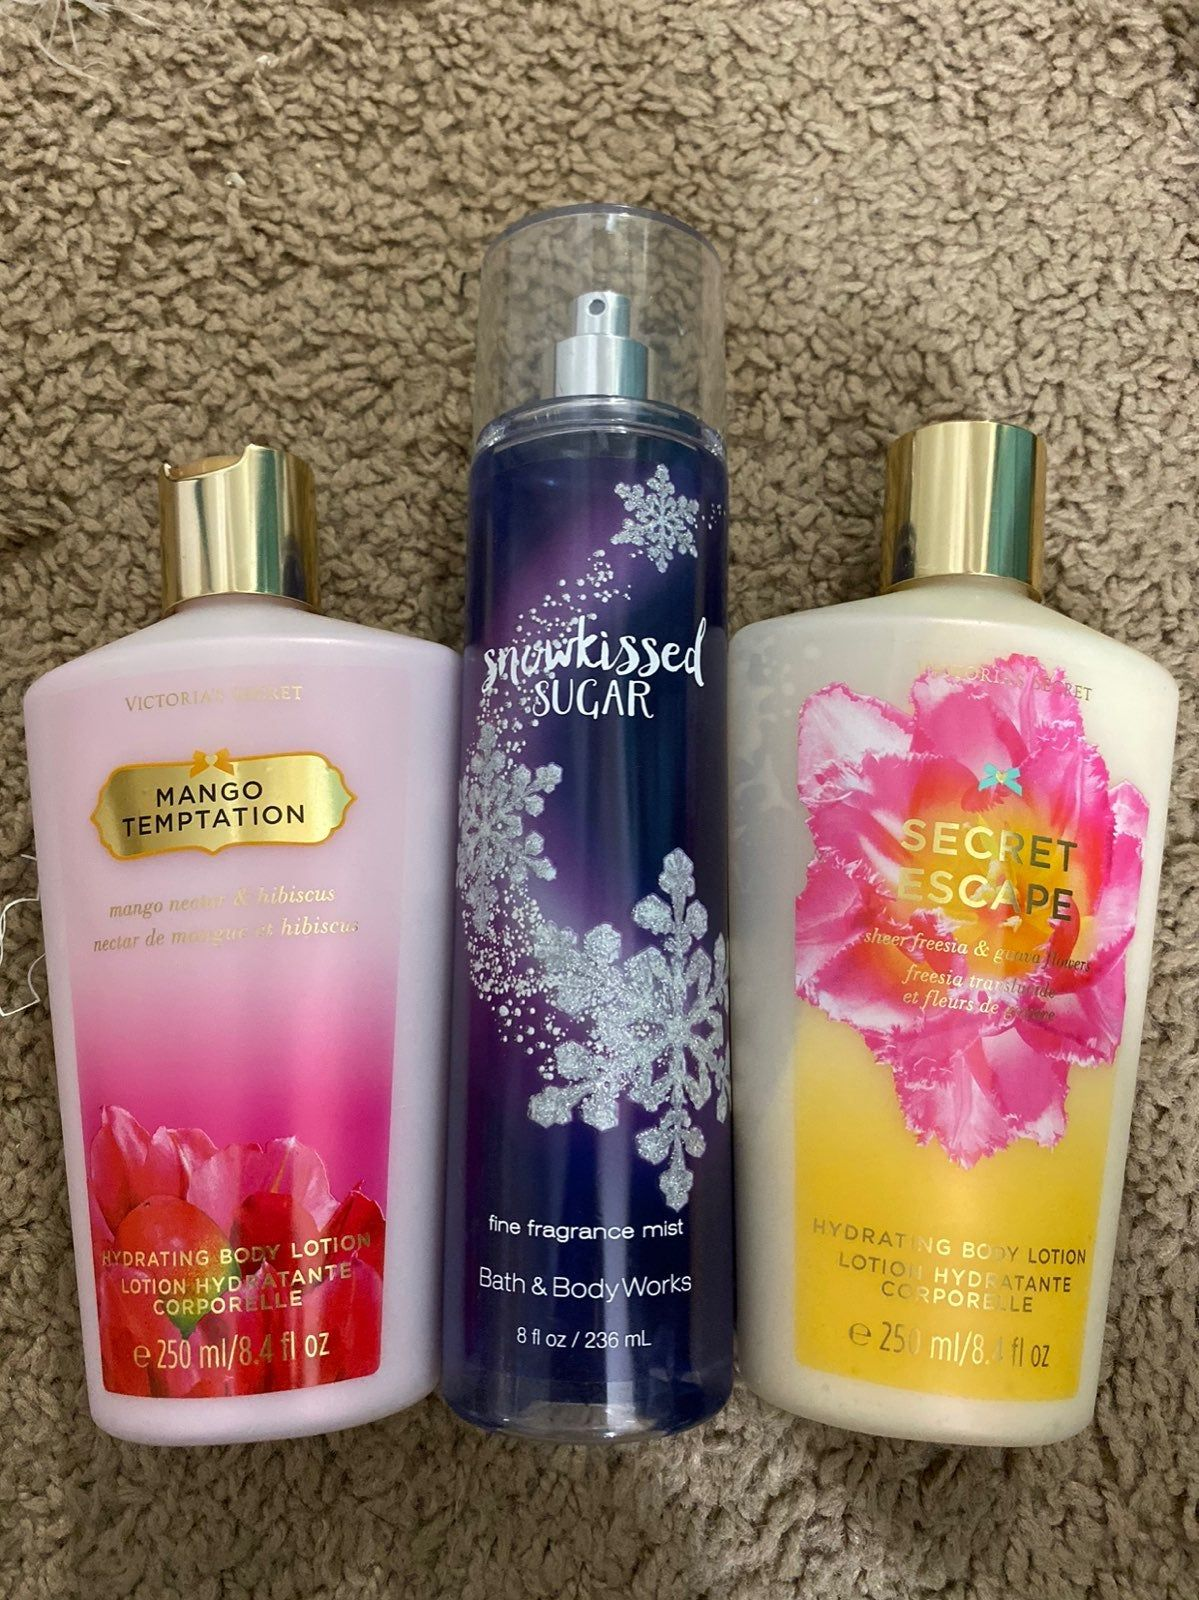 2 Vs Lotions And A Bath And Body Works Spray Bath And Body Works